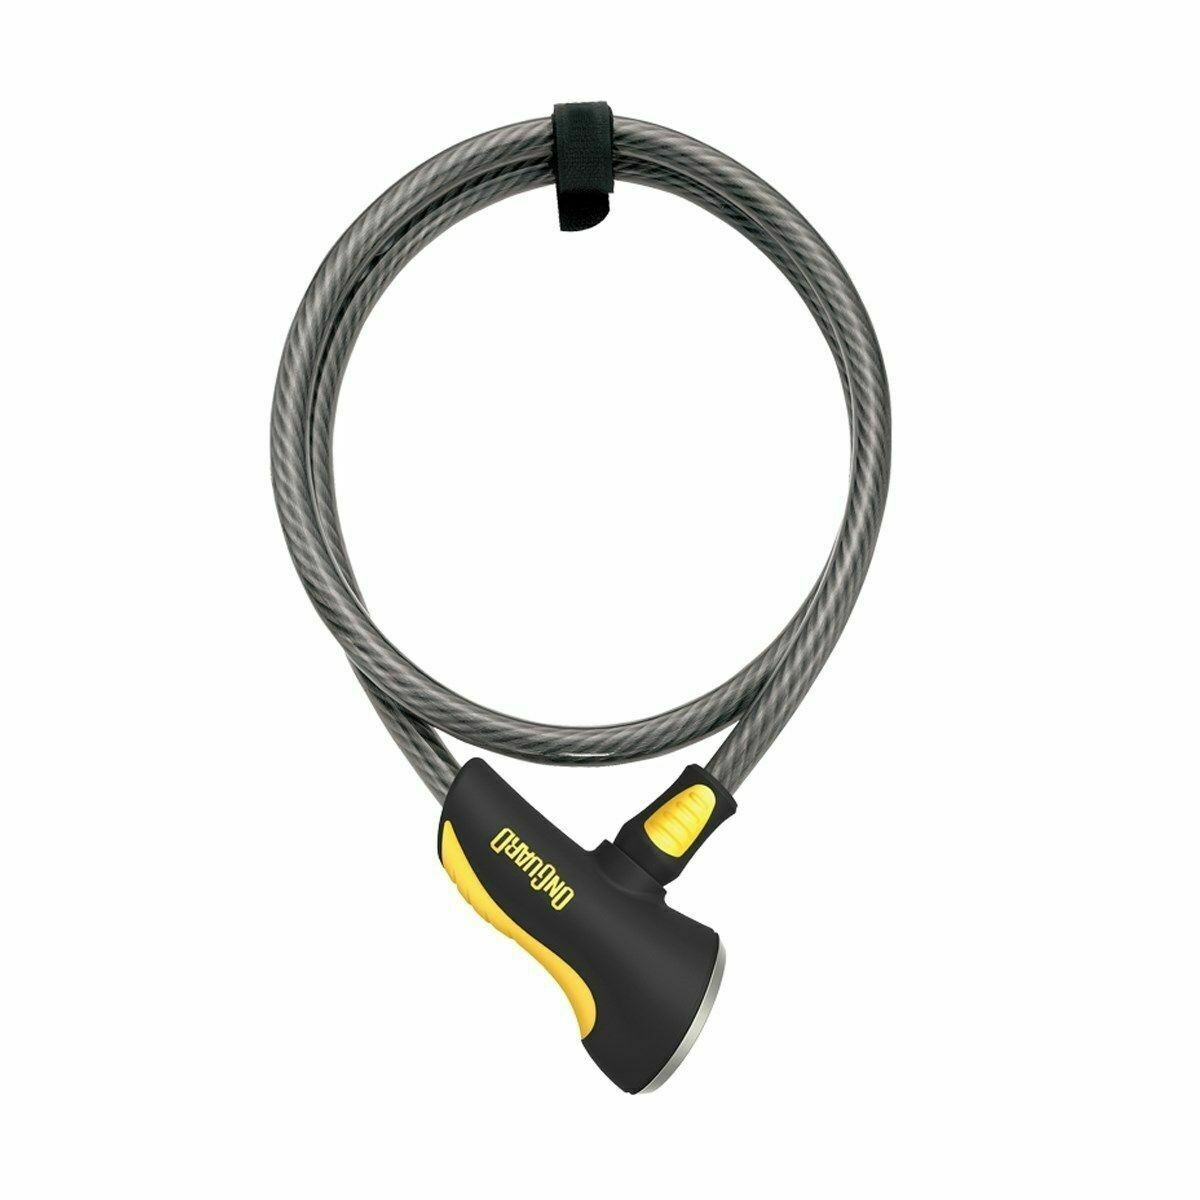 OnGuard 8039 Akita Key Lock Flex-Cable 12Mm X 3.25/'